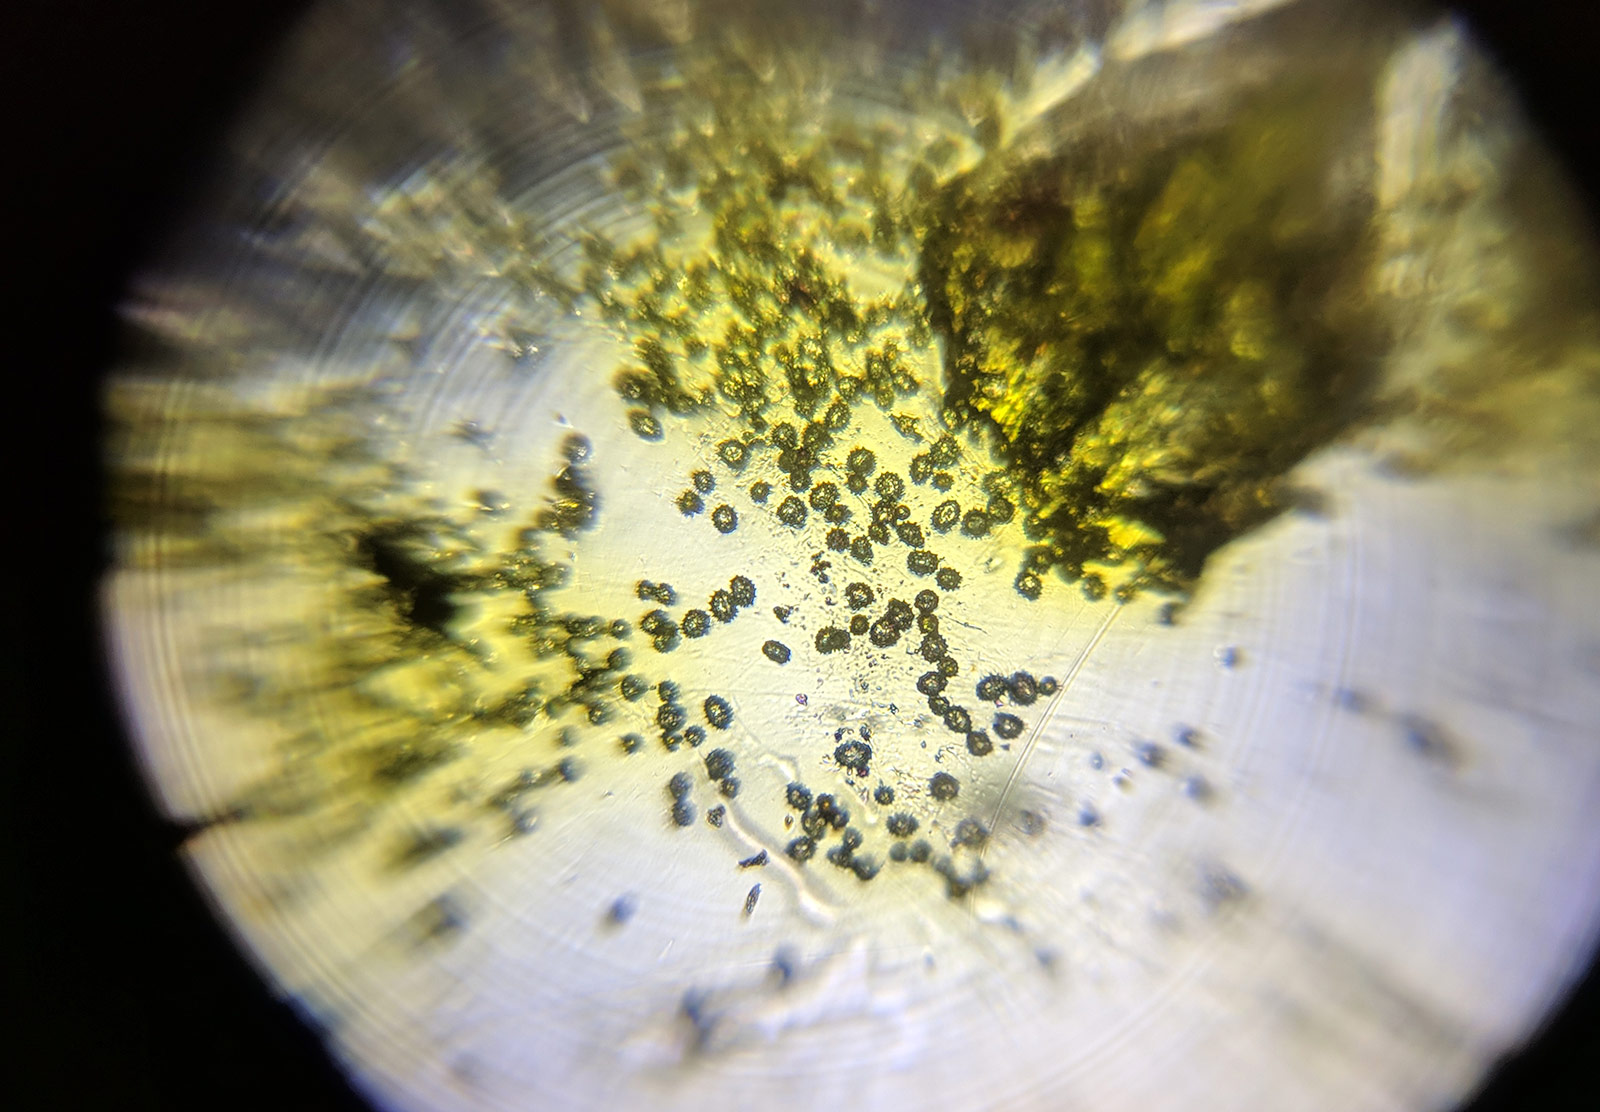 Pollen particles under micropscope